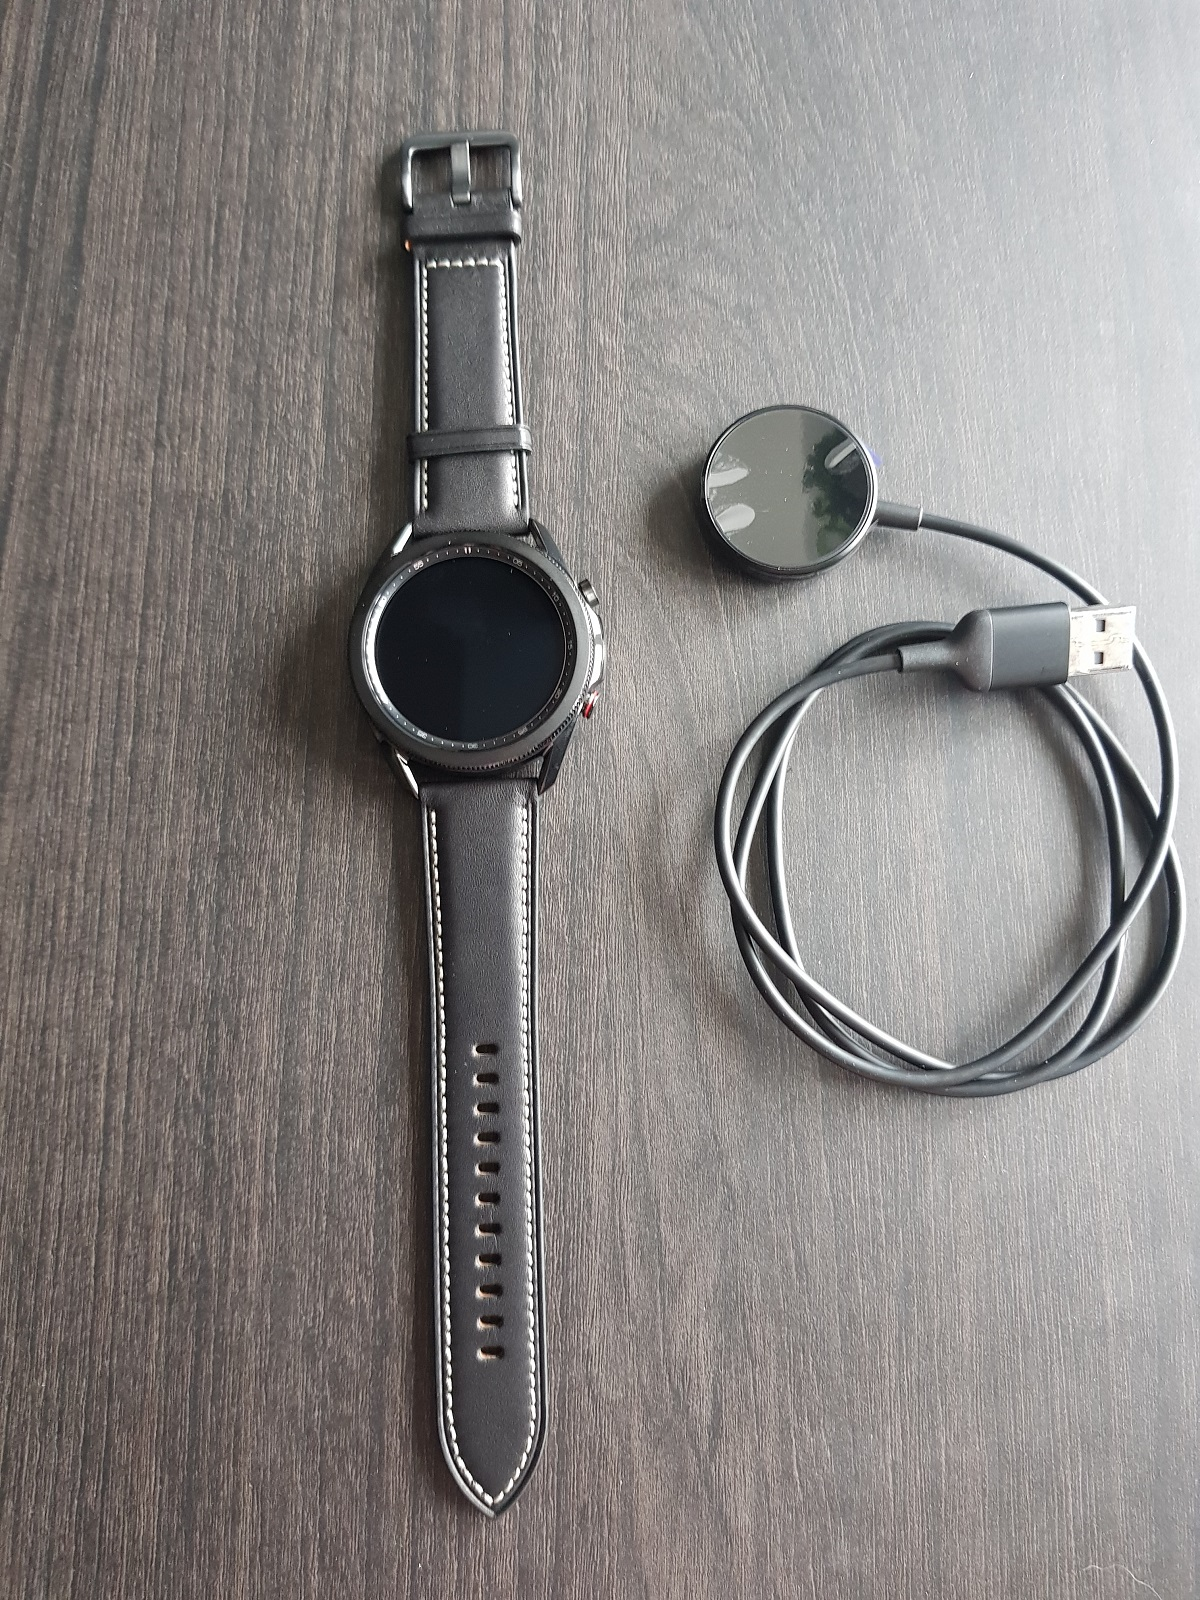 Samsung Wacth 3 review - unboxing